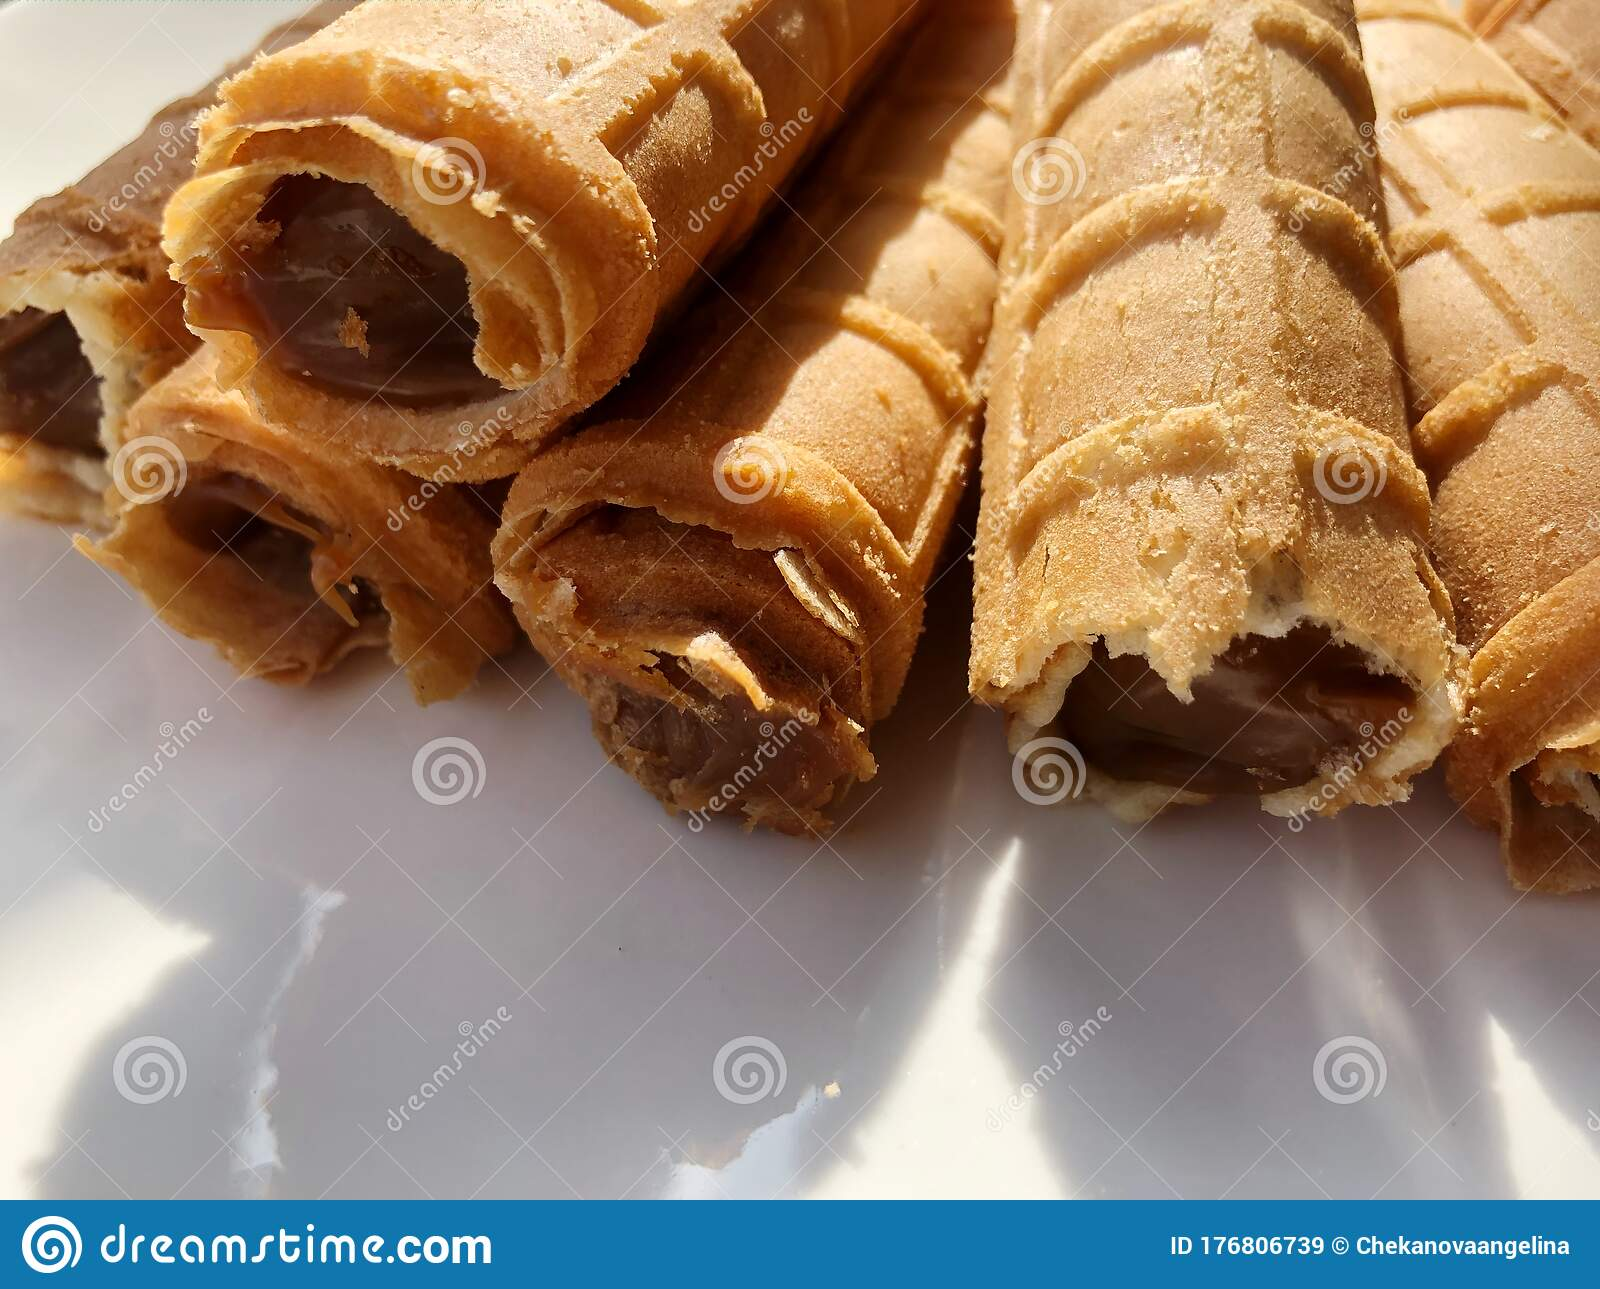 Delicious Waffle Tubes With Caramel For Breakfast Stock